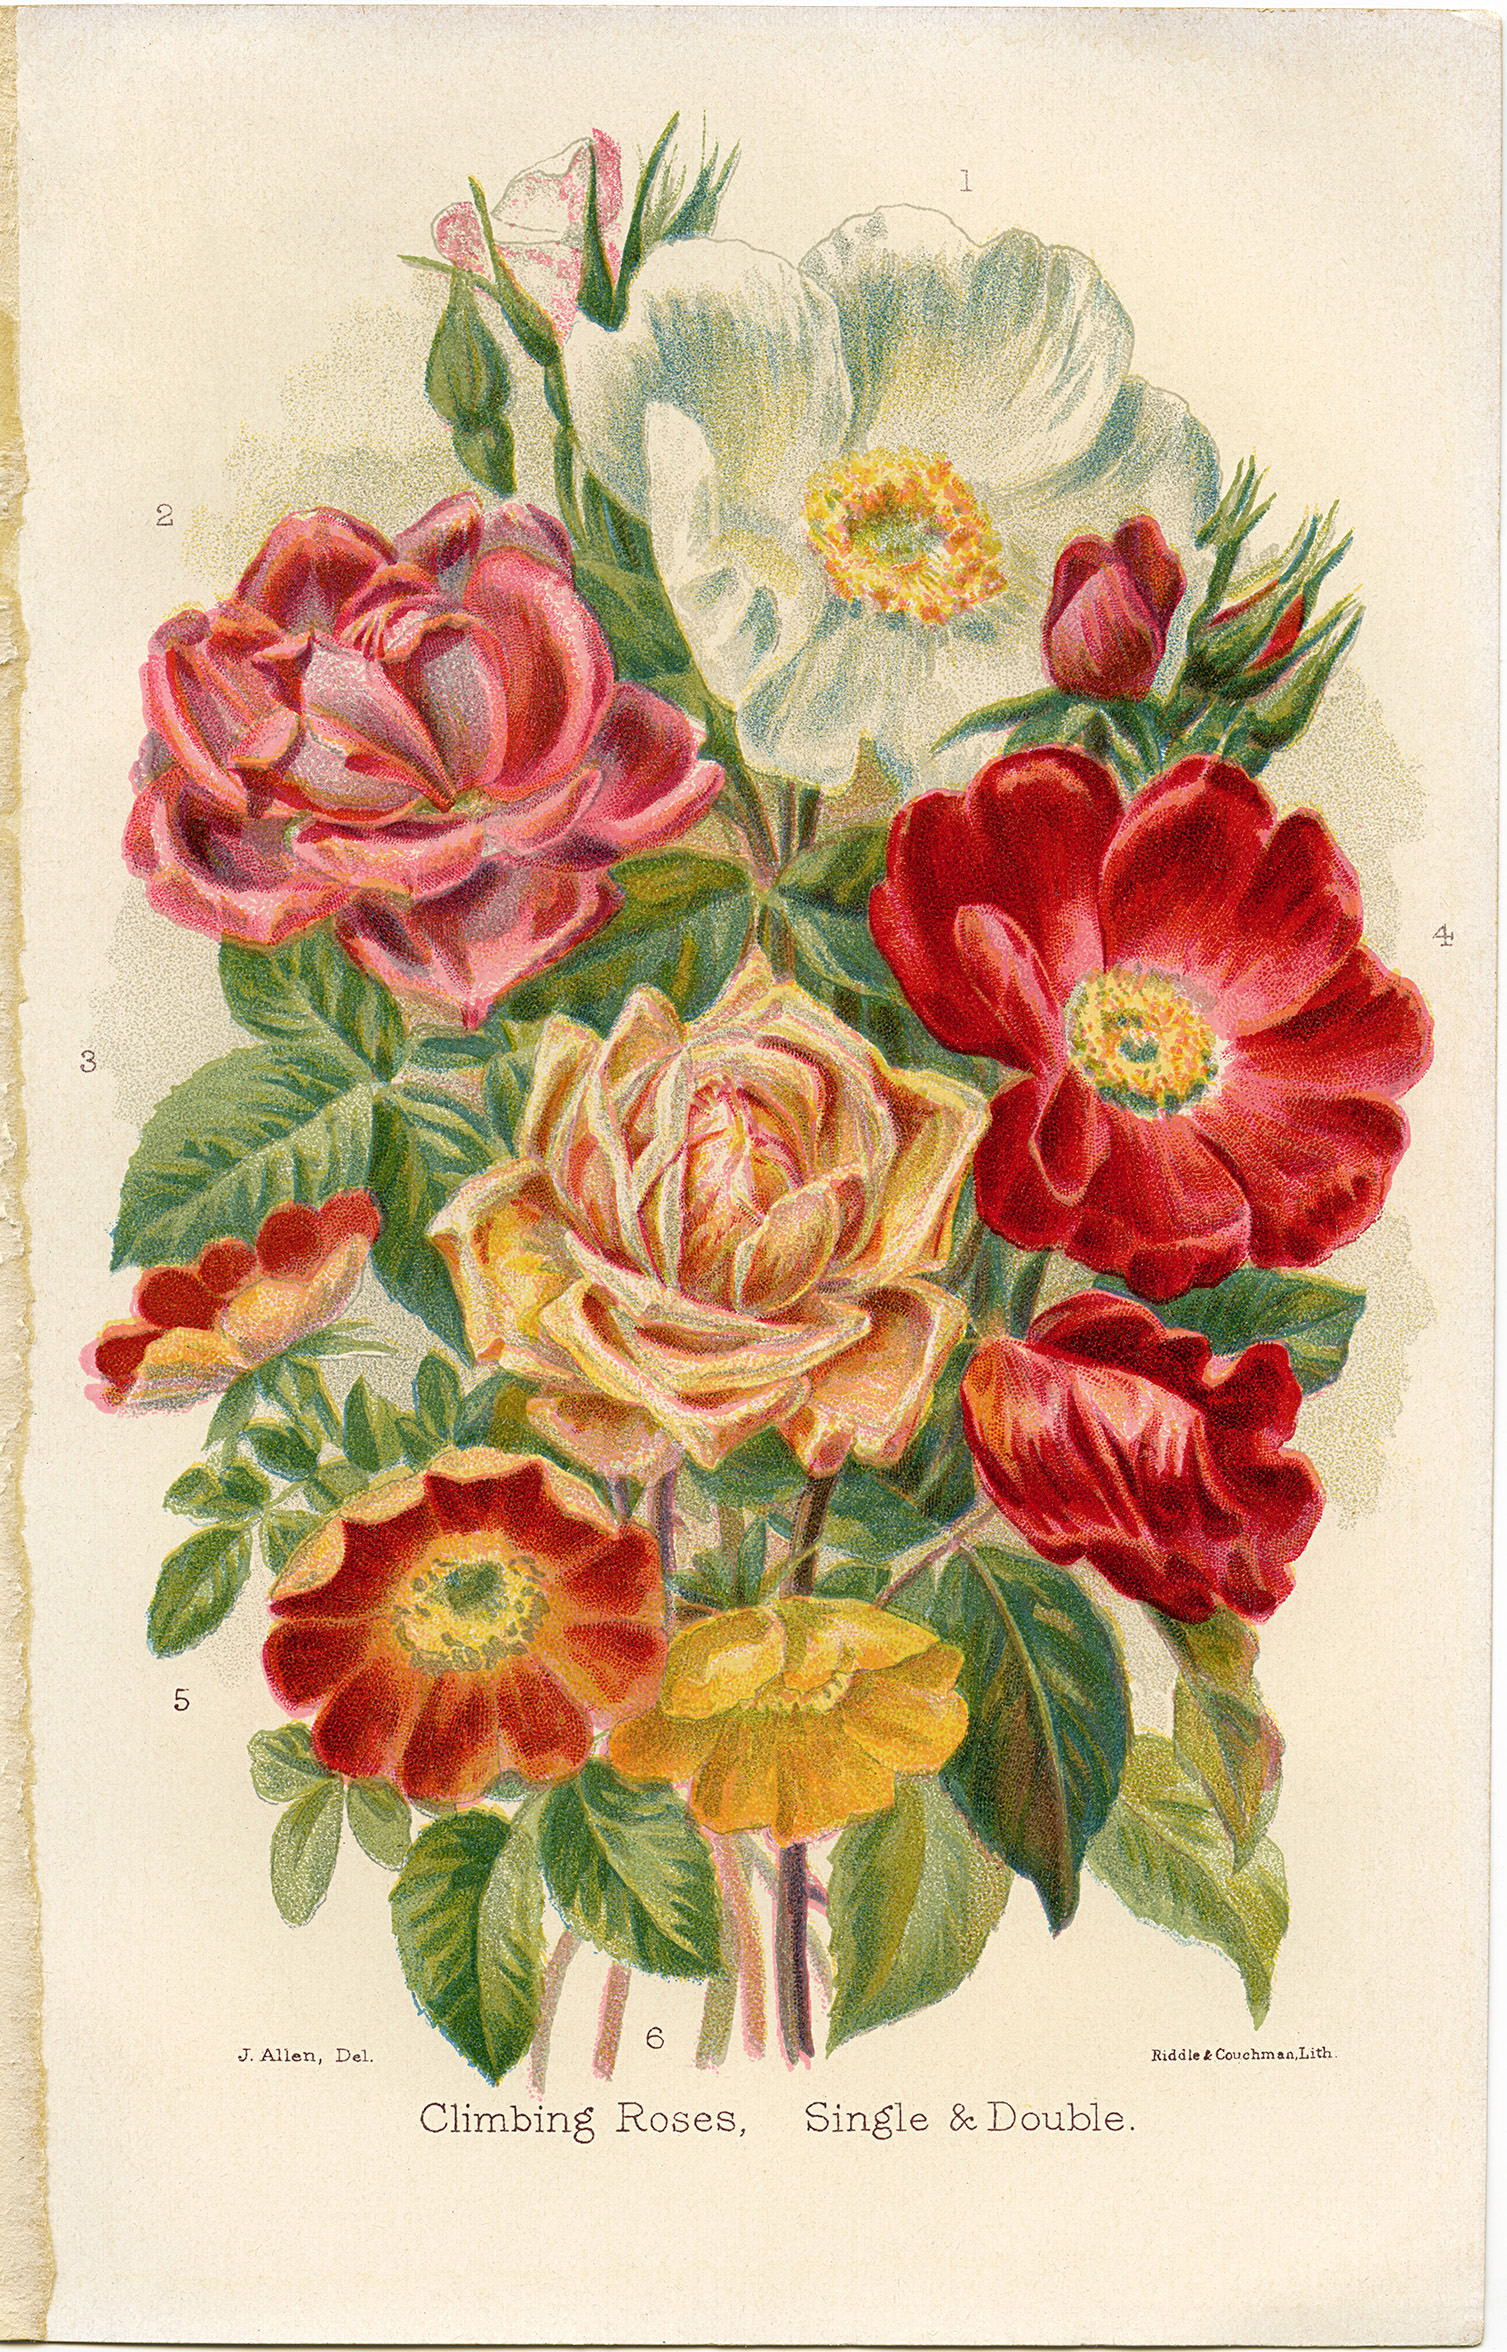 Old roses clipart clip art royalty free stock Free Vintage Clip Art Climbing Roses - Old Design Shop Blog clip art royalty free stock